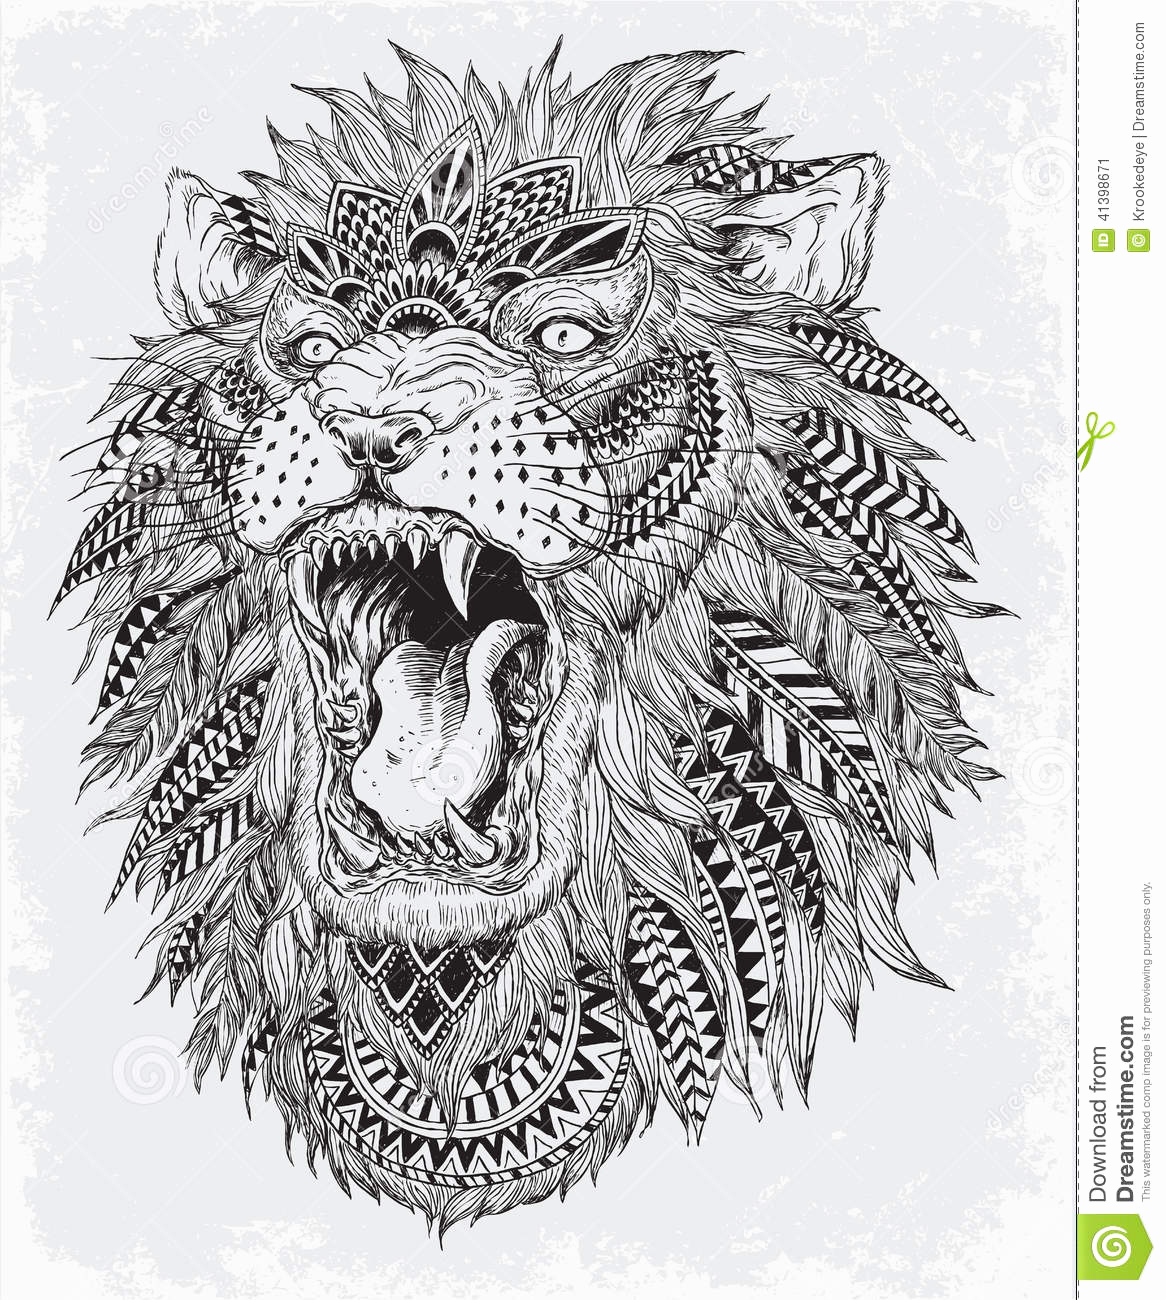 Black and White Illustration Lovely Hand Drawn Abstract Lion Vector Illustration Stock Vector